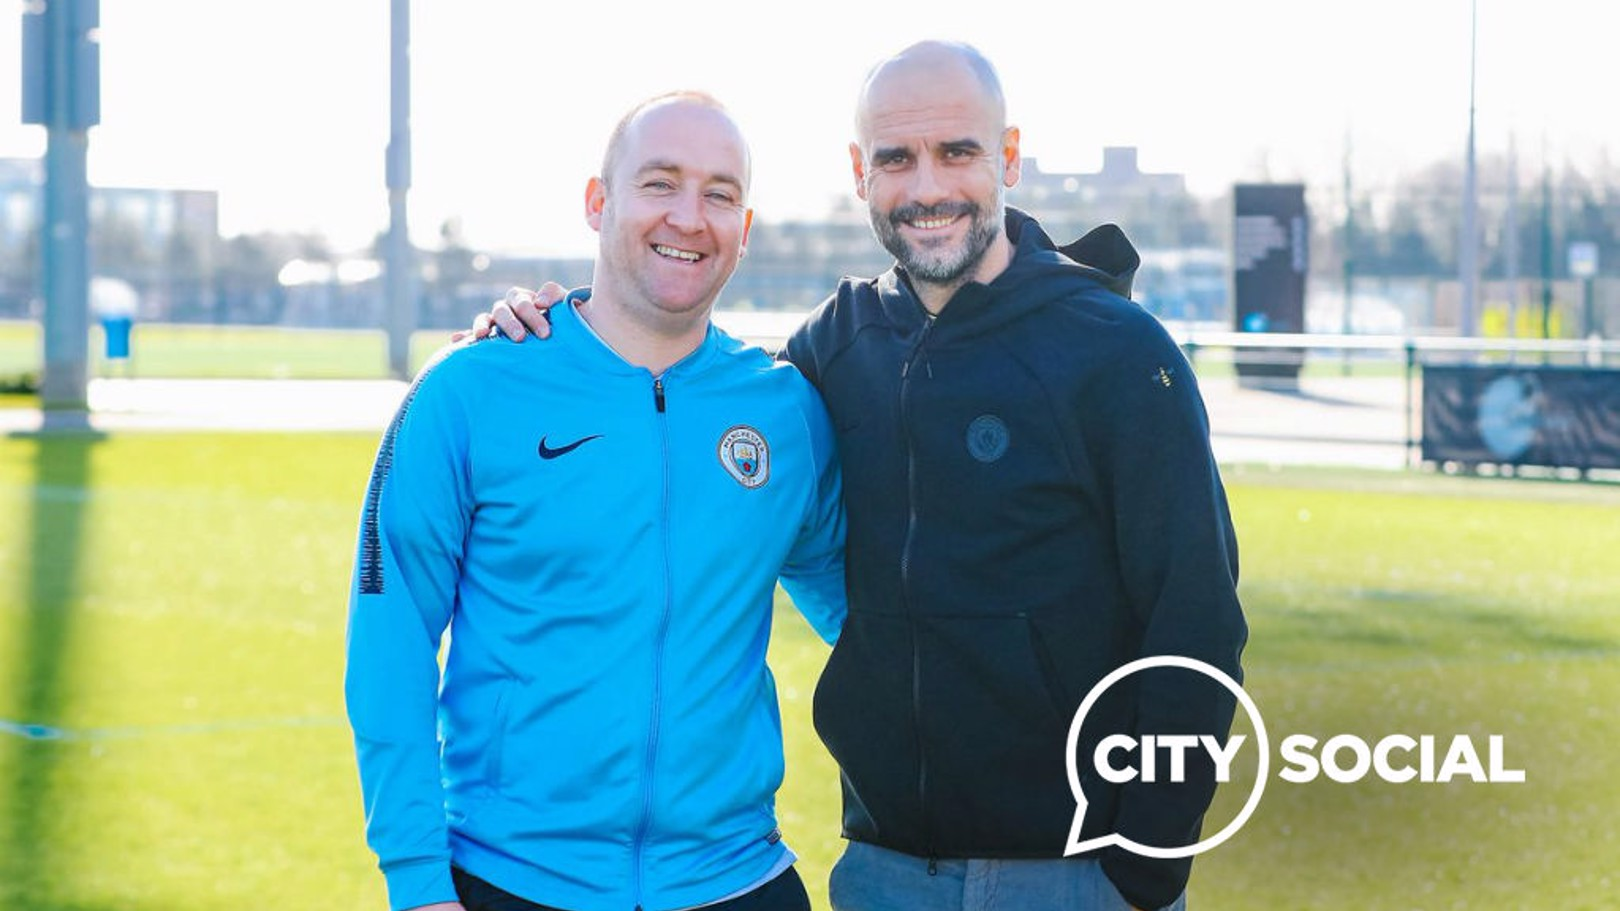 CITY SOCIAL: What a week it's been here at City!